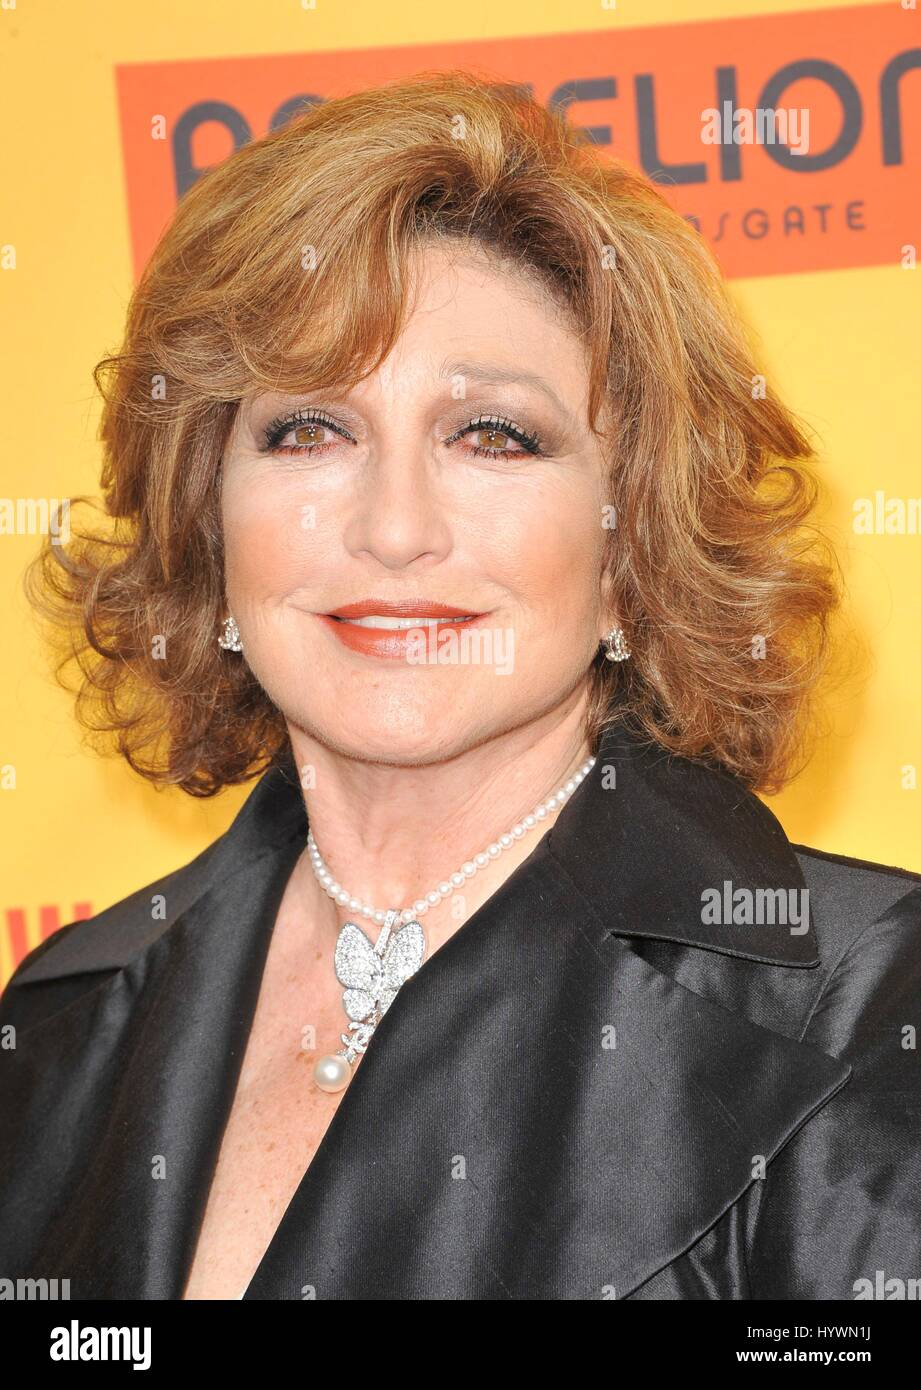 Angelica Maria Angelica Maria new photo